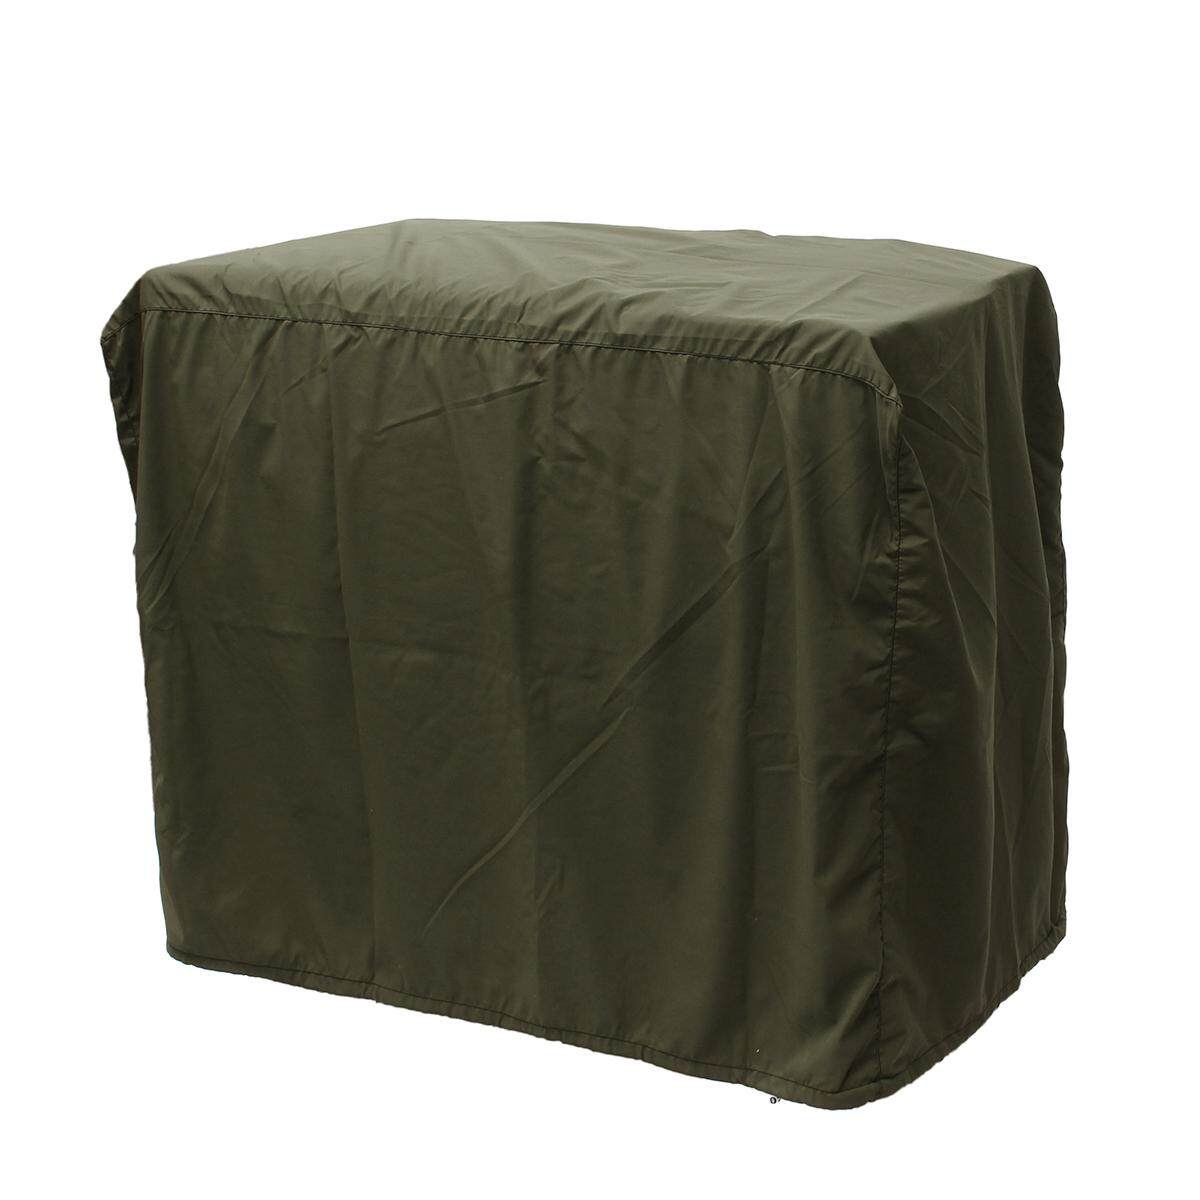 Sportsman Extra Large Waterproof Generator Cover For 15,000-Watt Generators New - Intl By Audew.